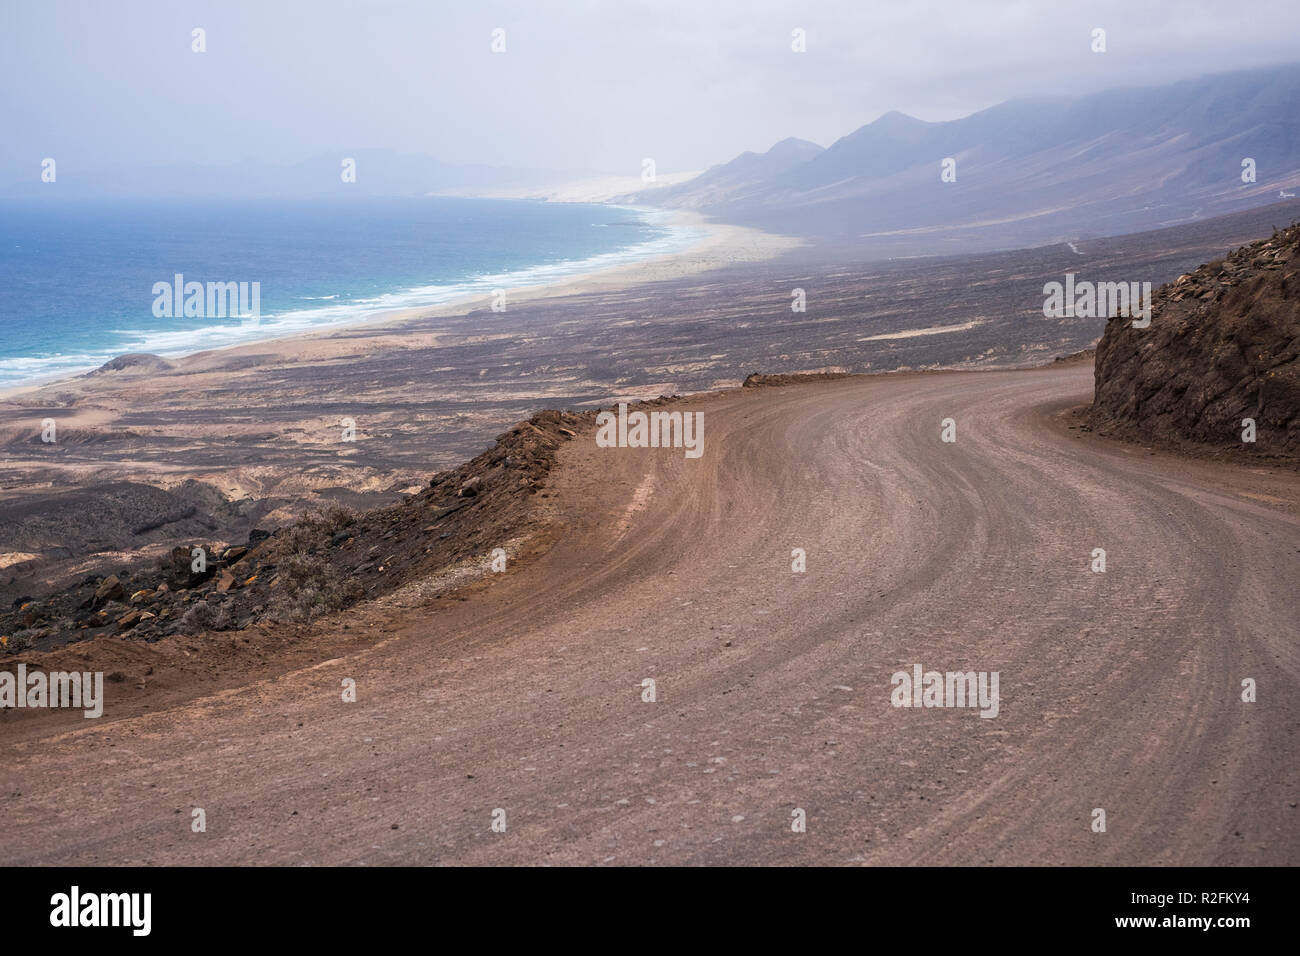 infinite wild beach with nobody there el cofete fuerteventura. paradise for surfers and backpack traveler no asphalt road just ground and adventure. timeless place to live an alternative lifestyle - Stock Image